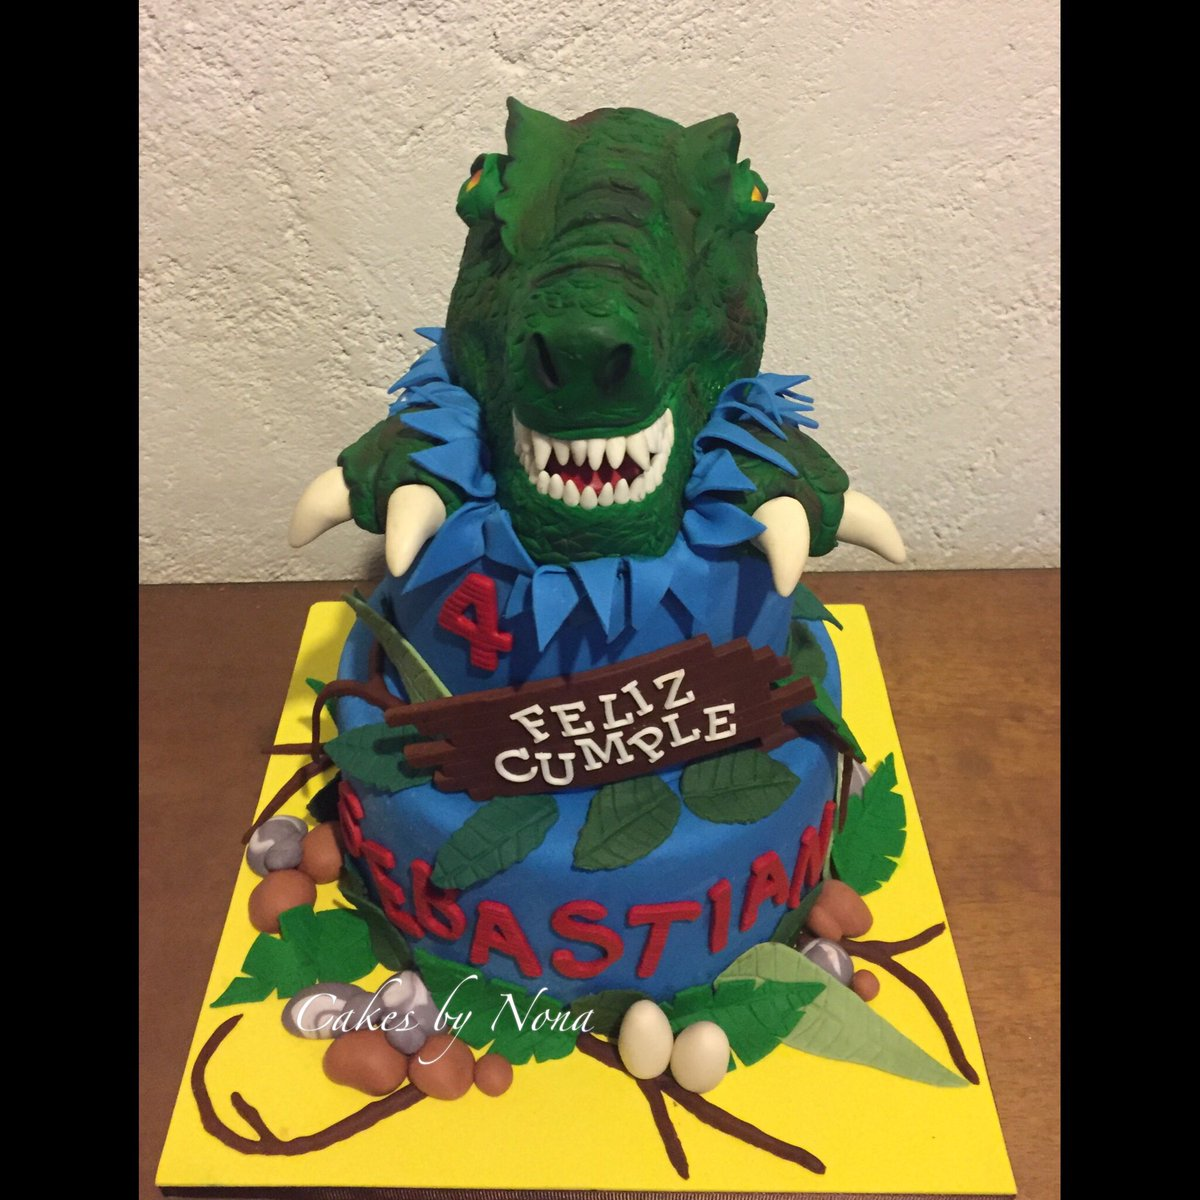 Cakesbynona On Twitter T Rex Bday Cake Trex Dino Dinosaur Dinosaurios Cake Cakesbynona Cakedecorating Cakedesign Cakesbynona Cakesbynonamex Customcakes Https T Co Ks0mussgrm The cake was widely sold in bakeries and its recipe was considered a secret. t rex bday cake trex dino dinosaur